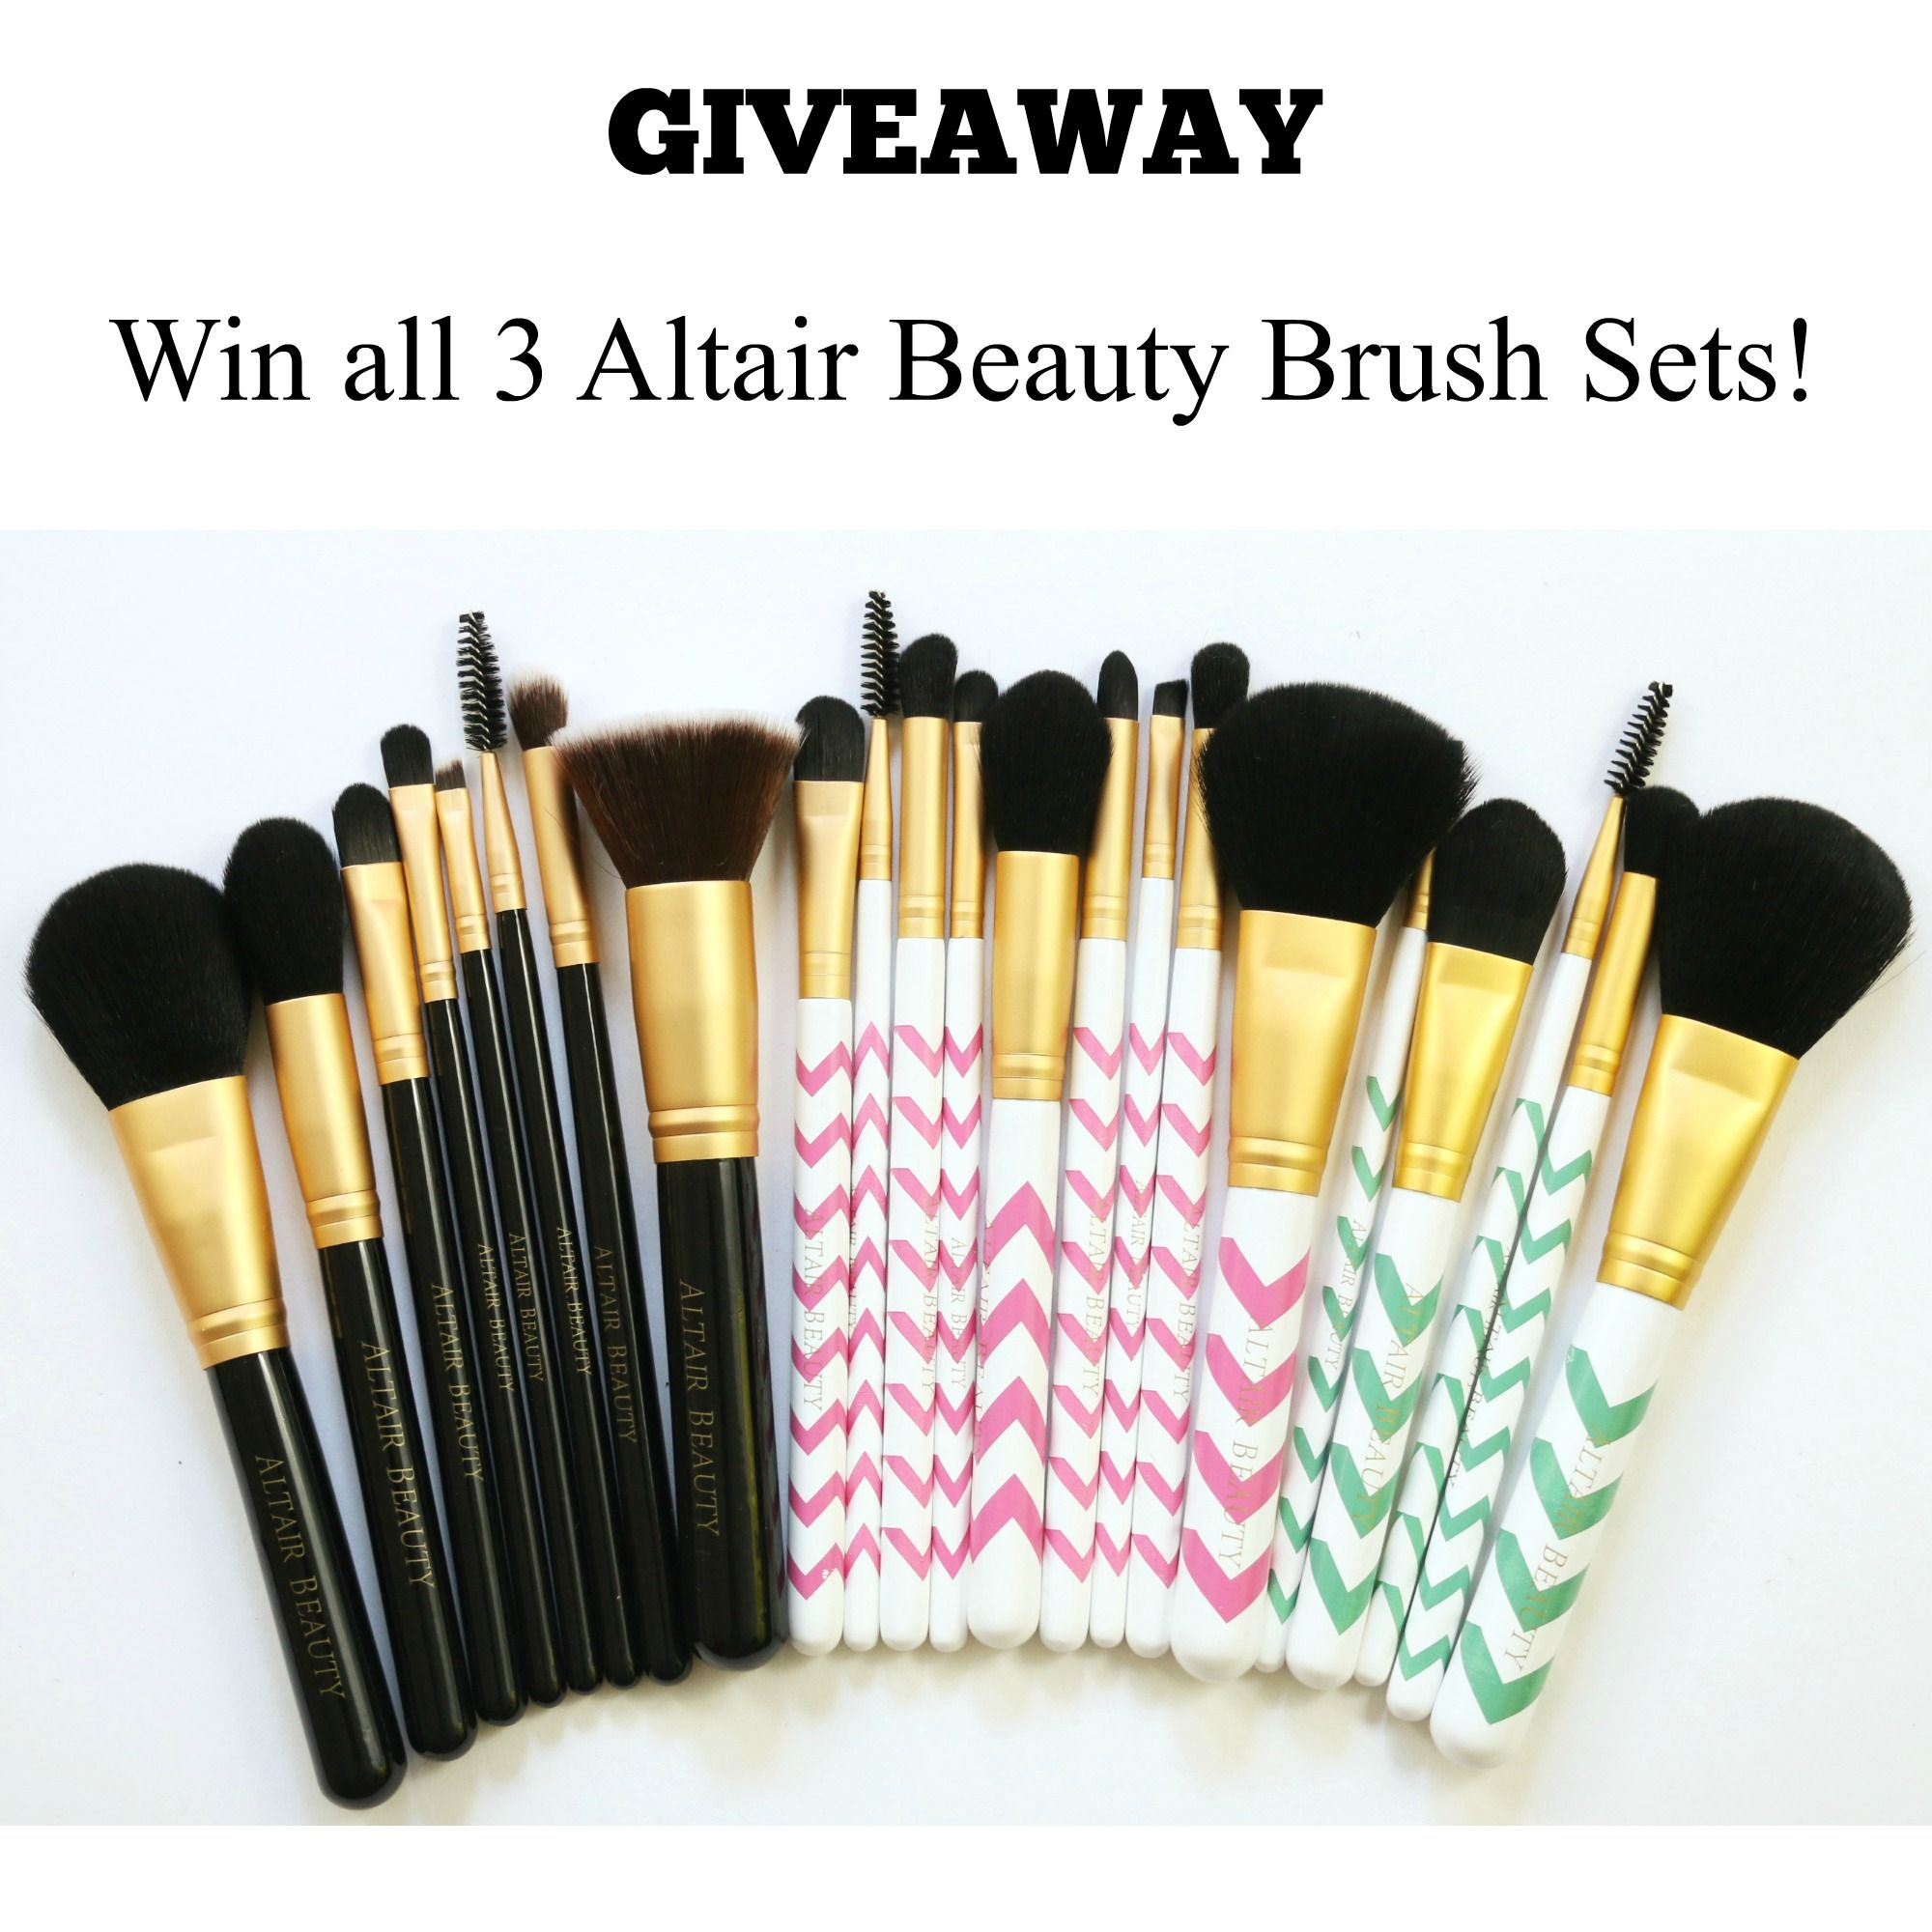 Win 3 sets of Makeup Brushes from Altair Beauty. Head over